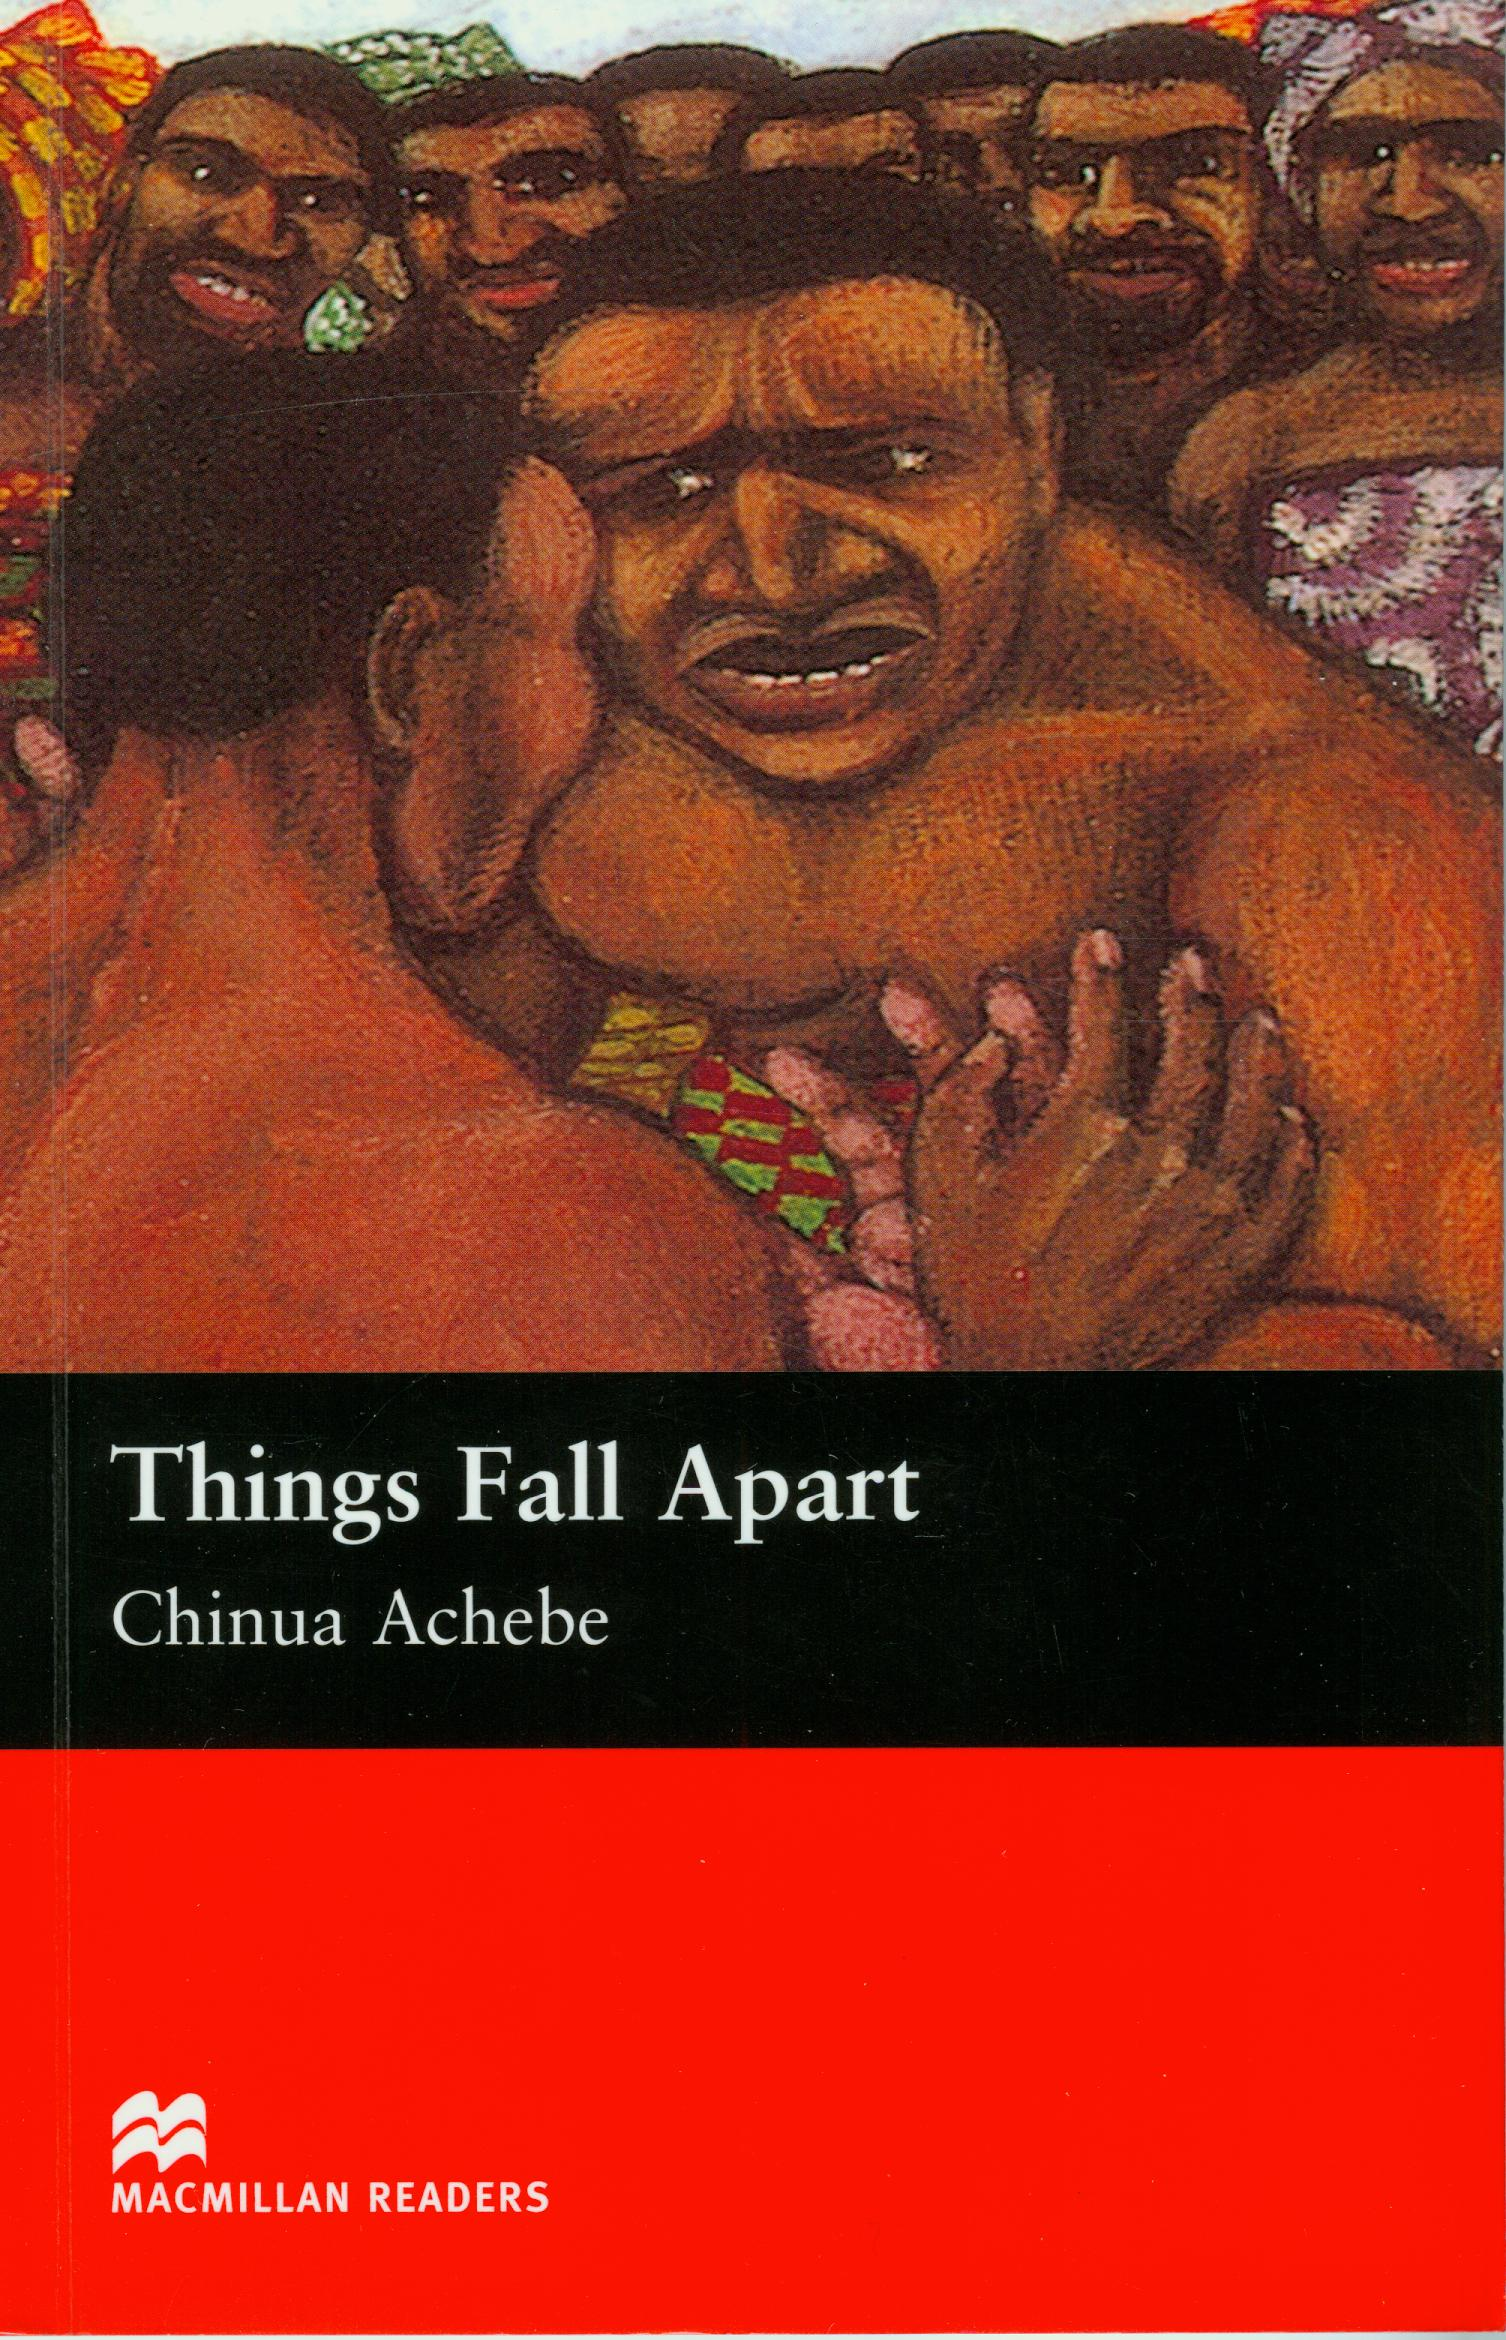 theme okonkwo ruled his household a heavy hand his wives  theme okonkwo ruled his household a heavy hand his wives especially the youngest lived in perpetual fear of his fiery temper in the igbo w